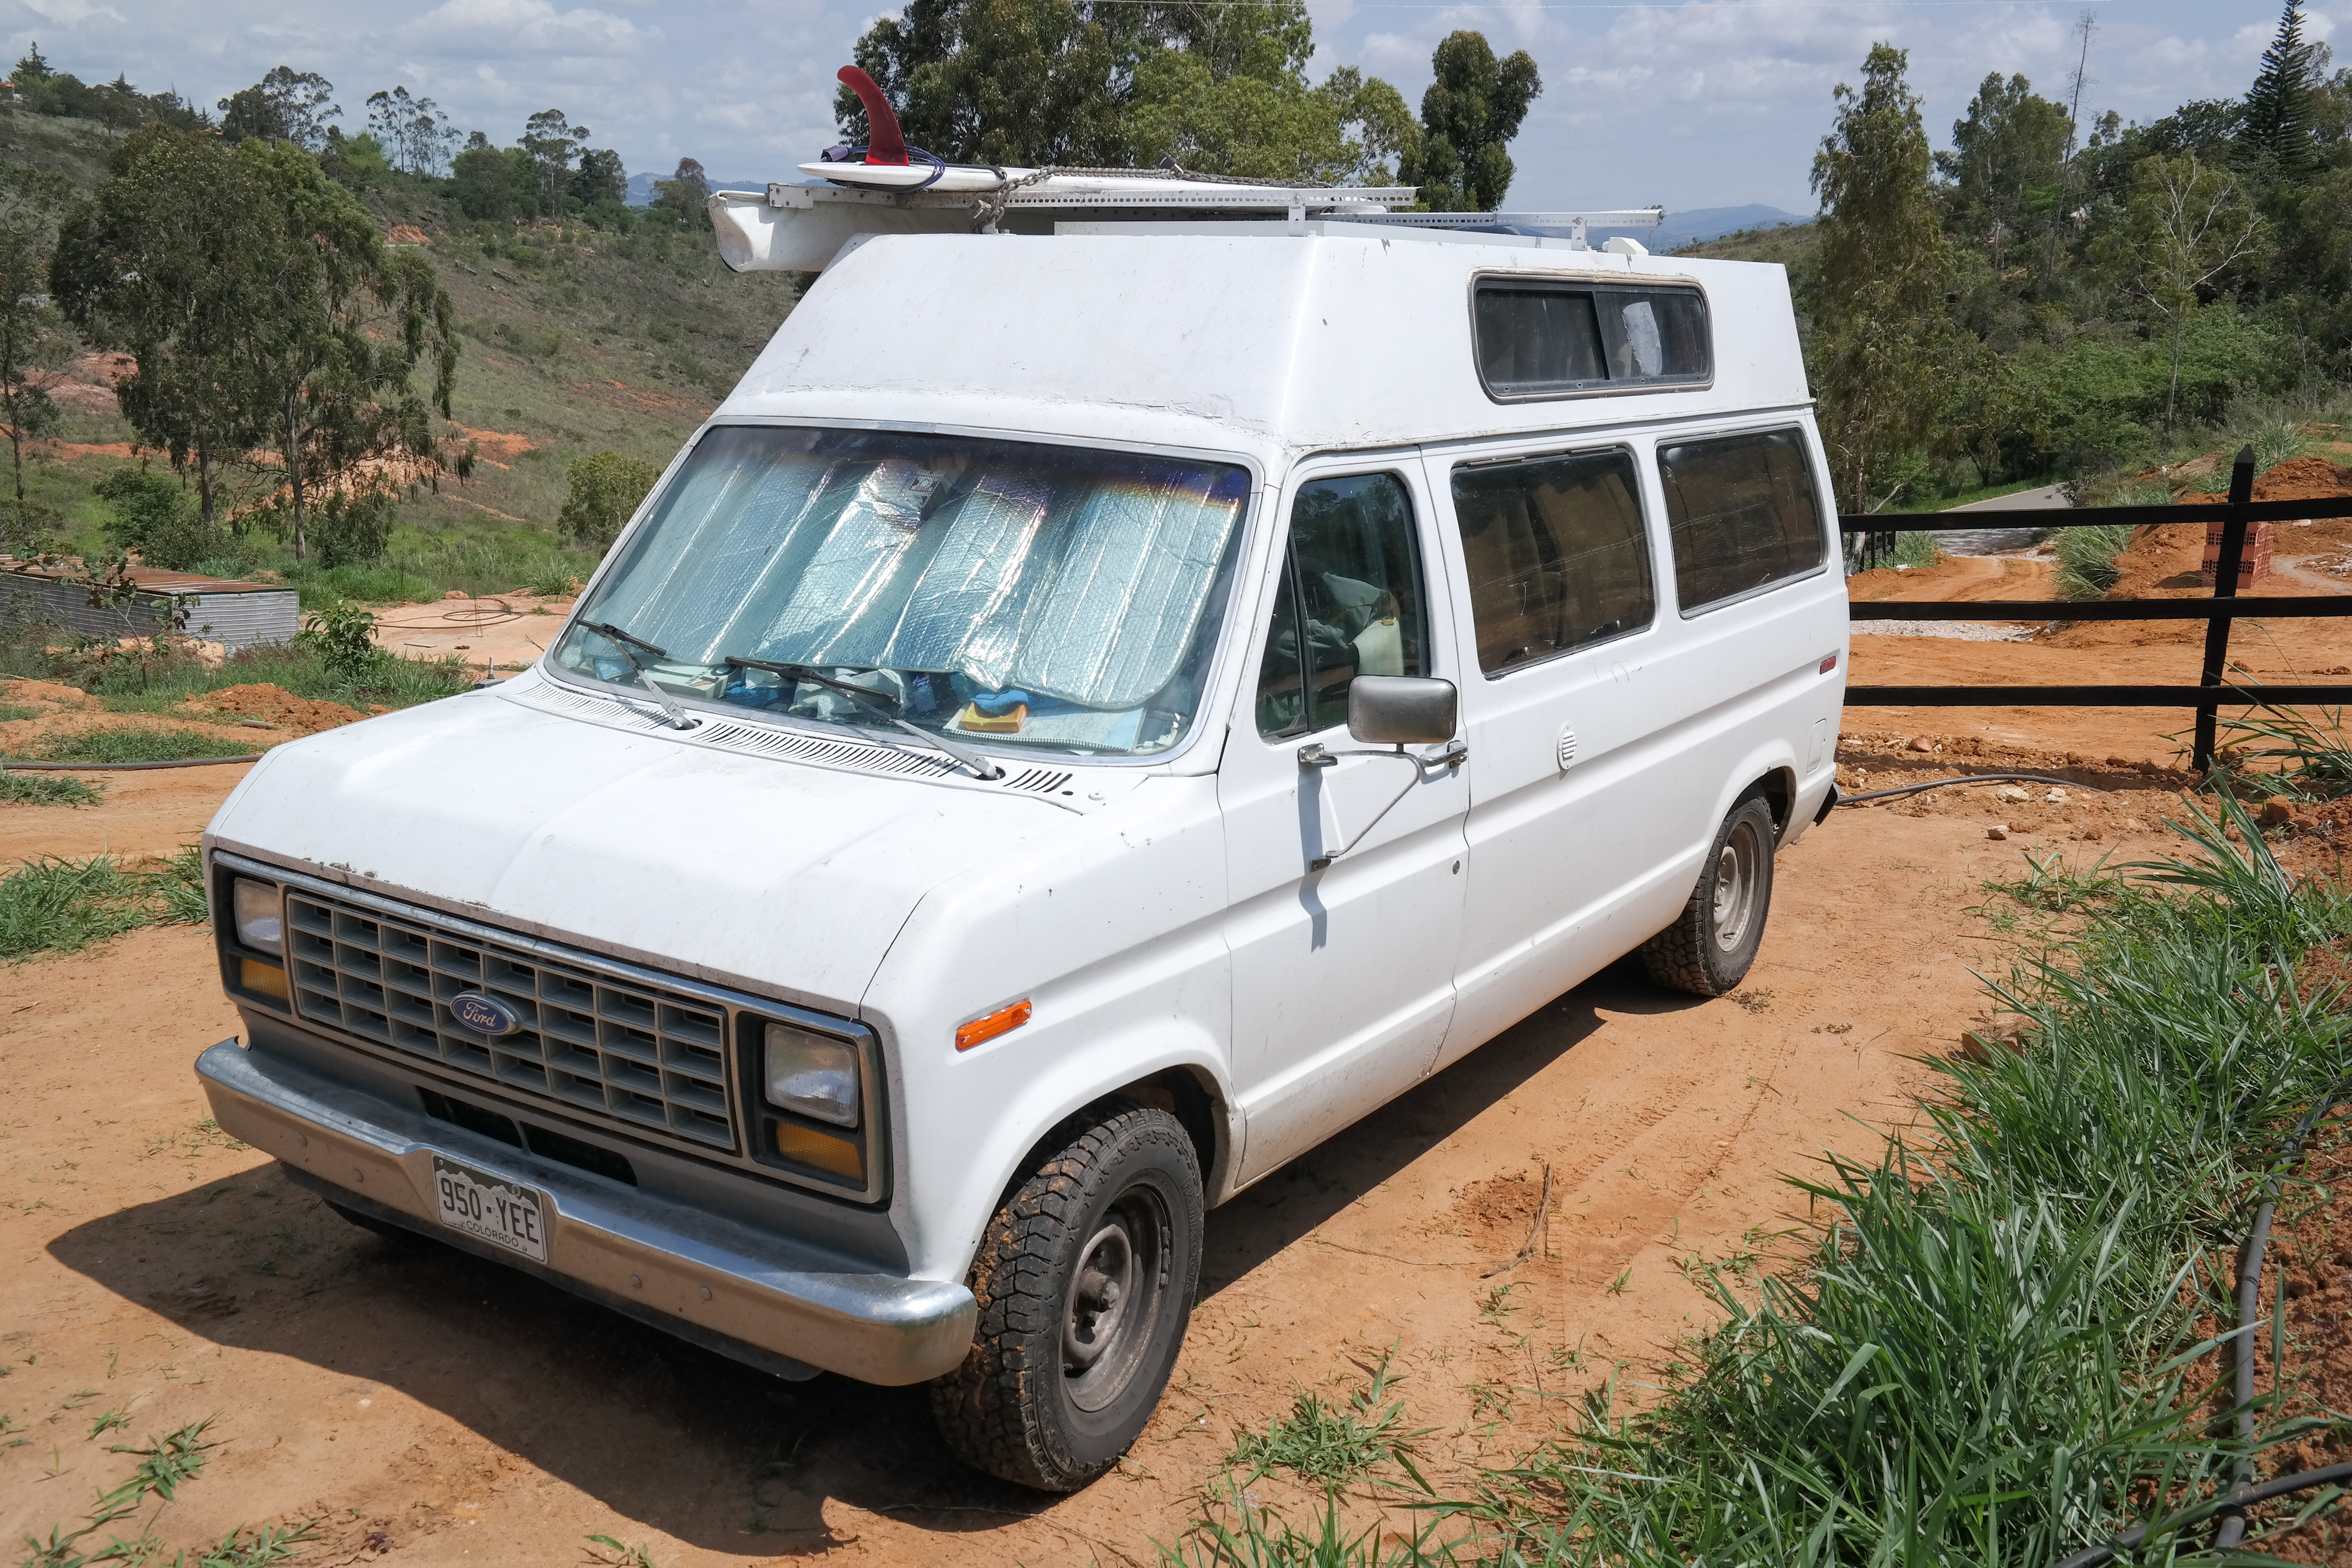 Camper Van For Sale In Argentina Chili Beginning Of 2015